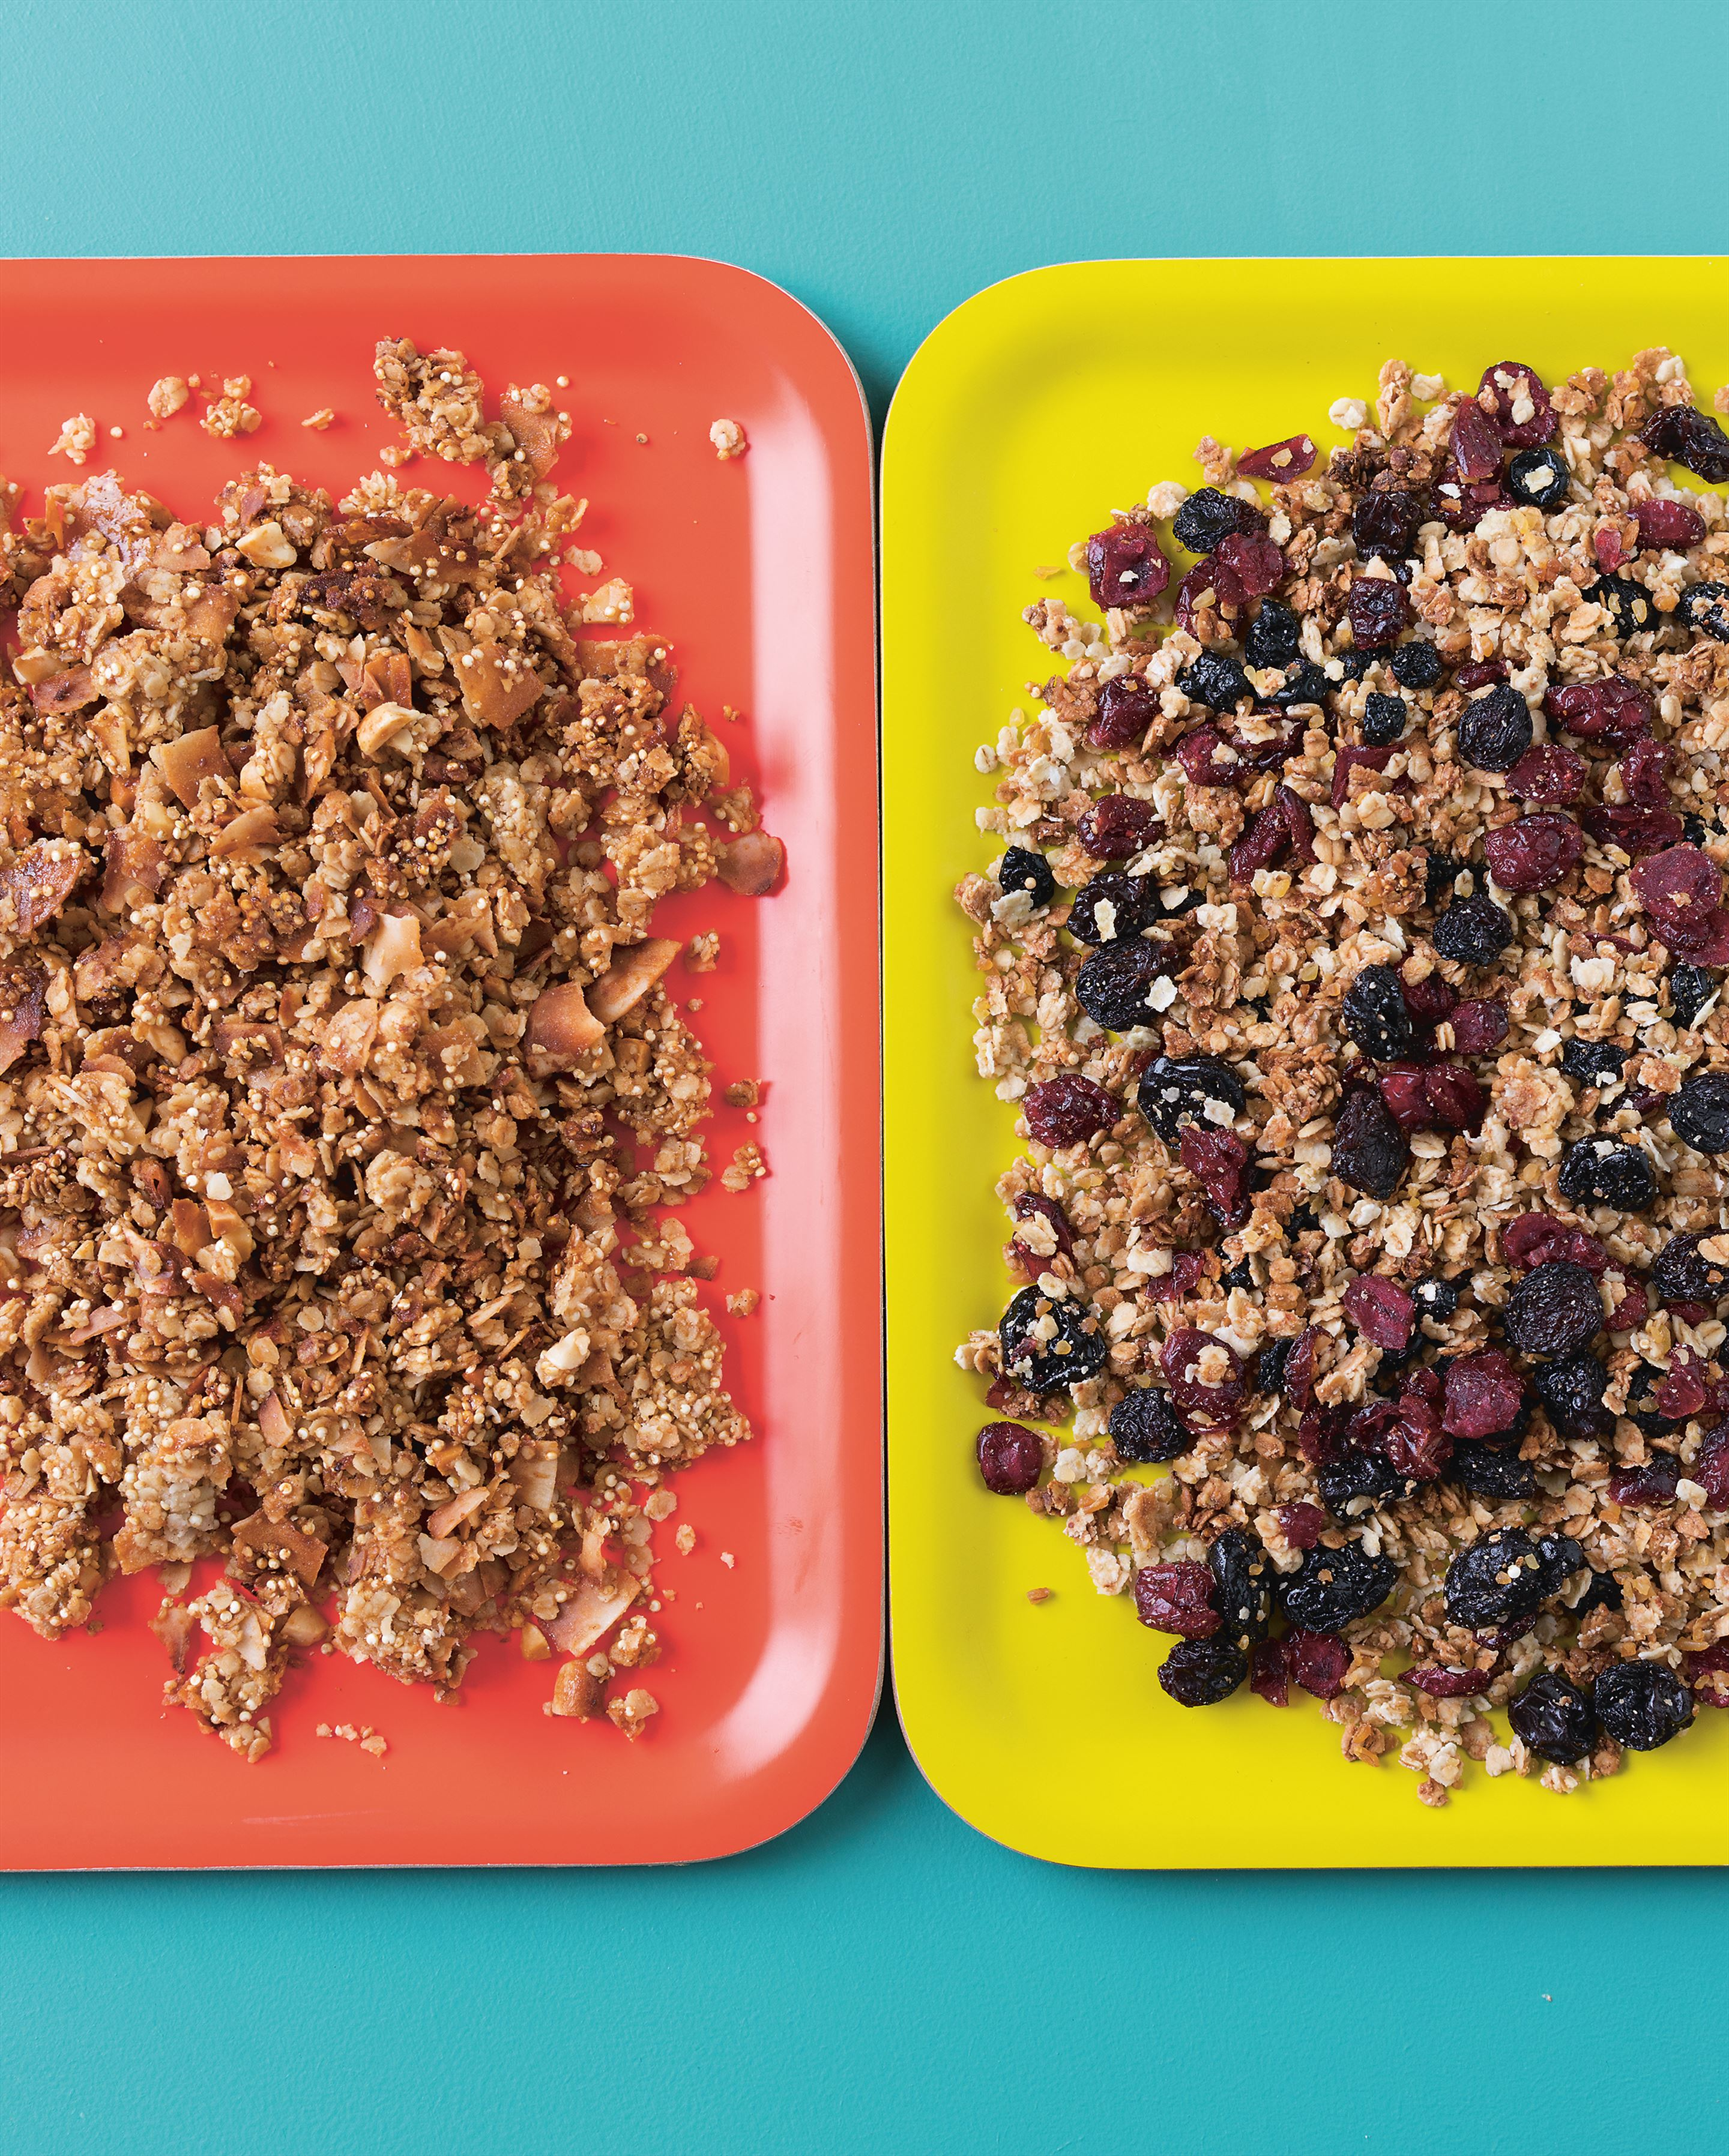 Honey and quinoa granola